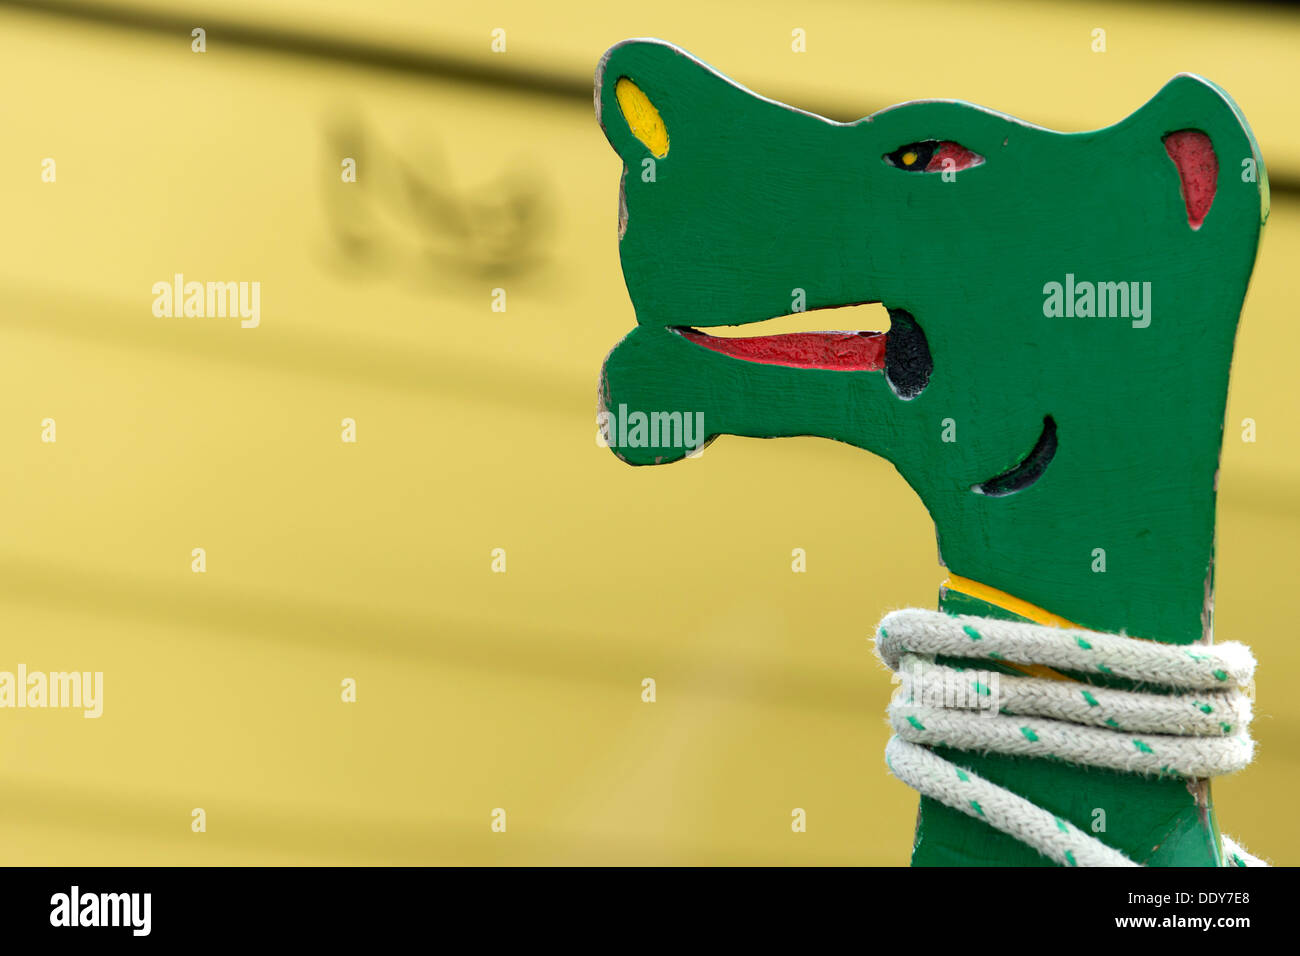 Dragon figure on the bow of a rowing boat - Stock Image